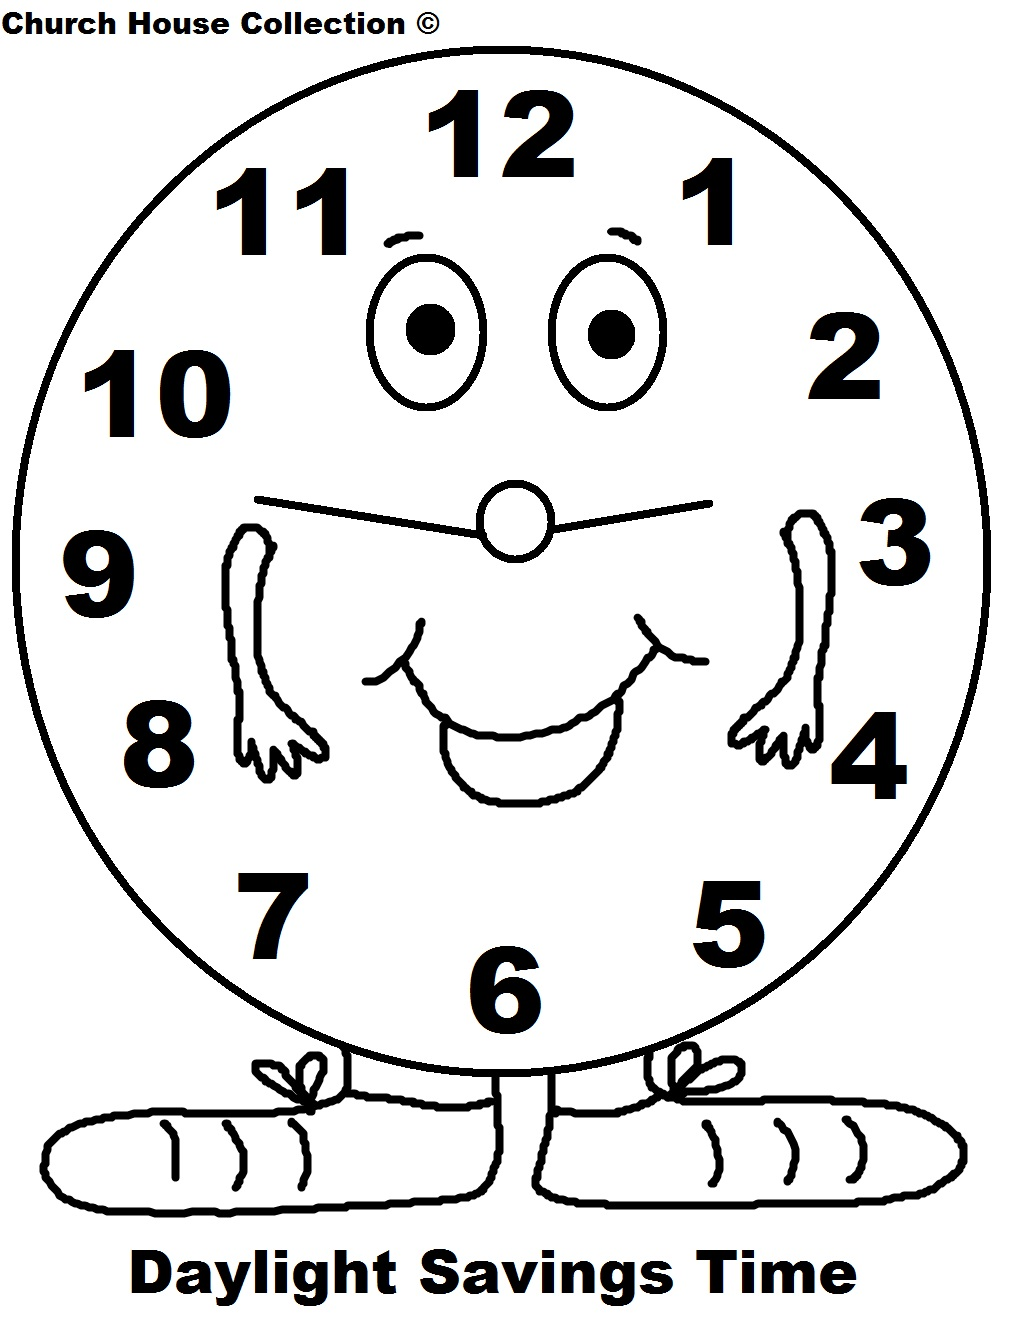 Daylight Savings Clipart | Chadholtz